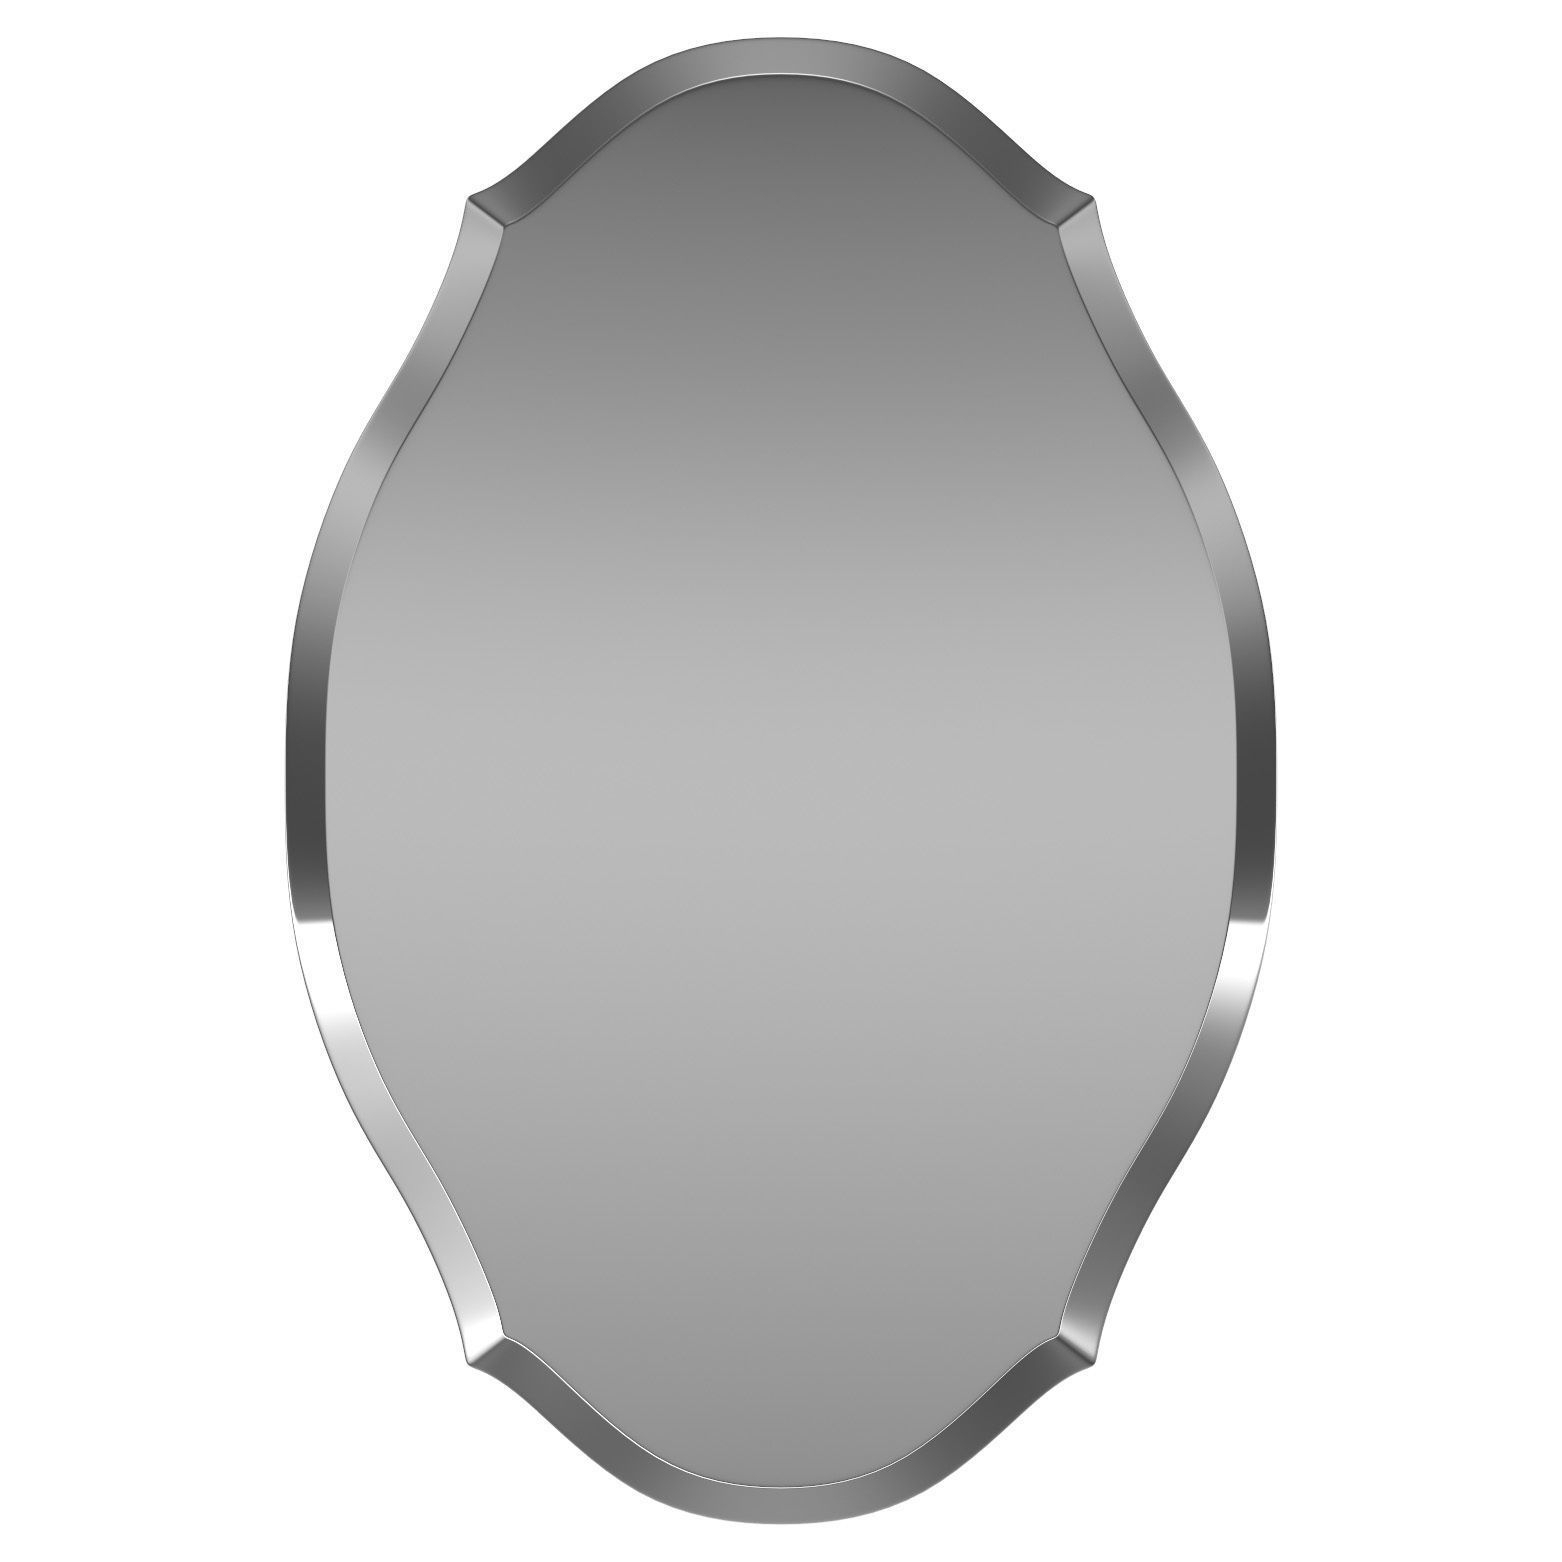 Egor Accent Mirror Wrlo7860 | 3D Model Within Egor Accent Mirrors (Photo 2 of 30)